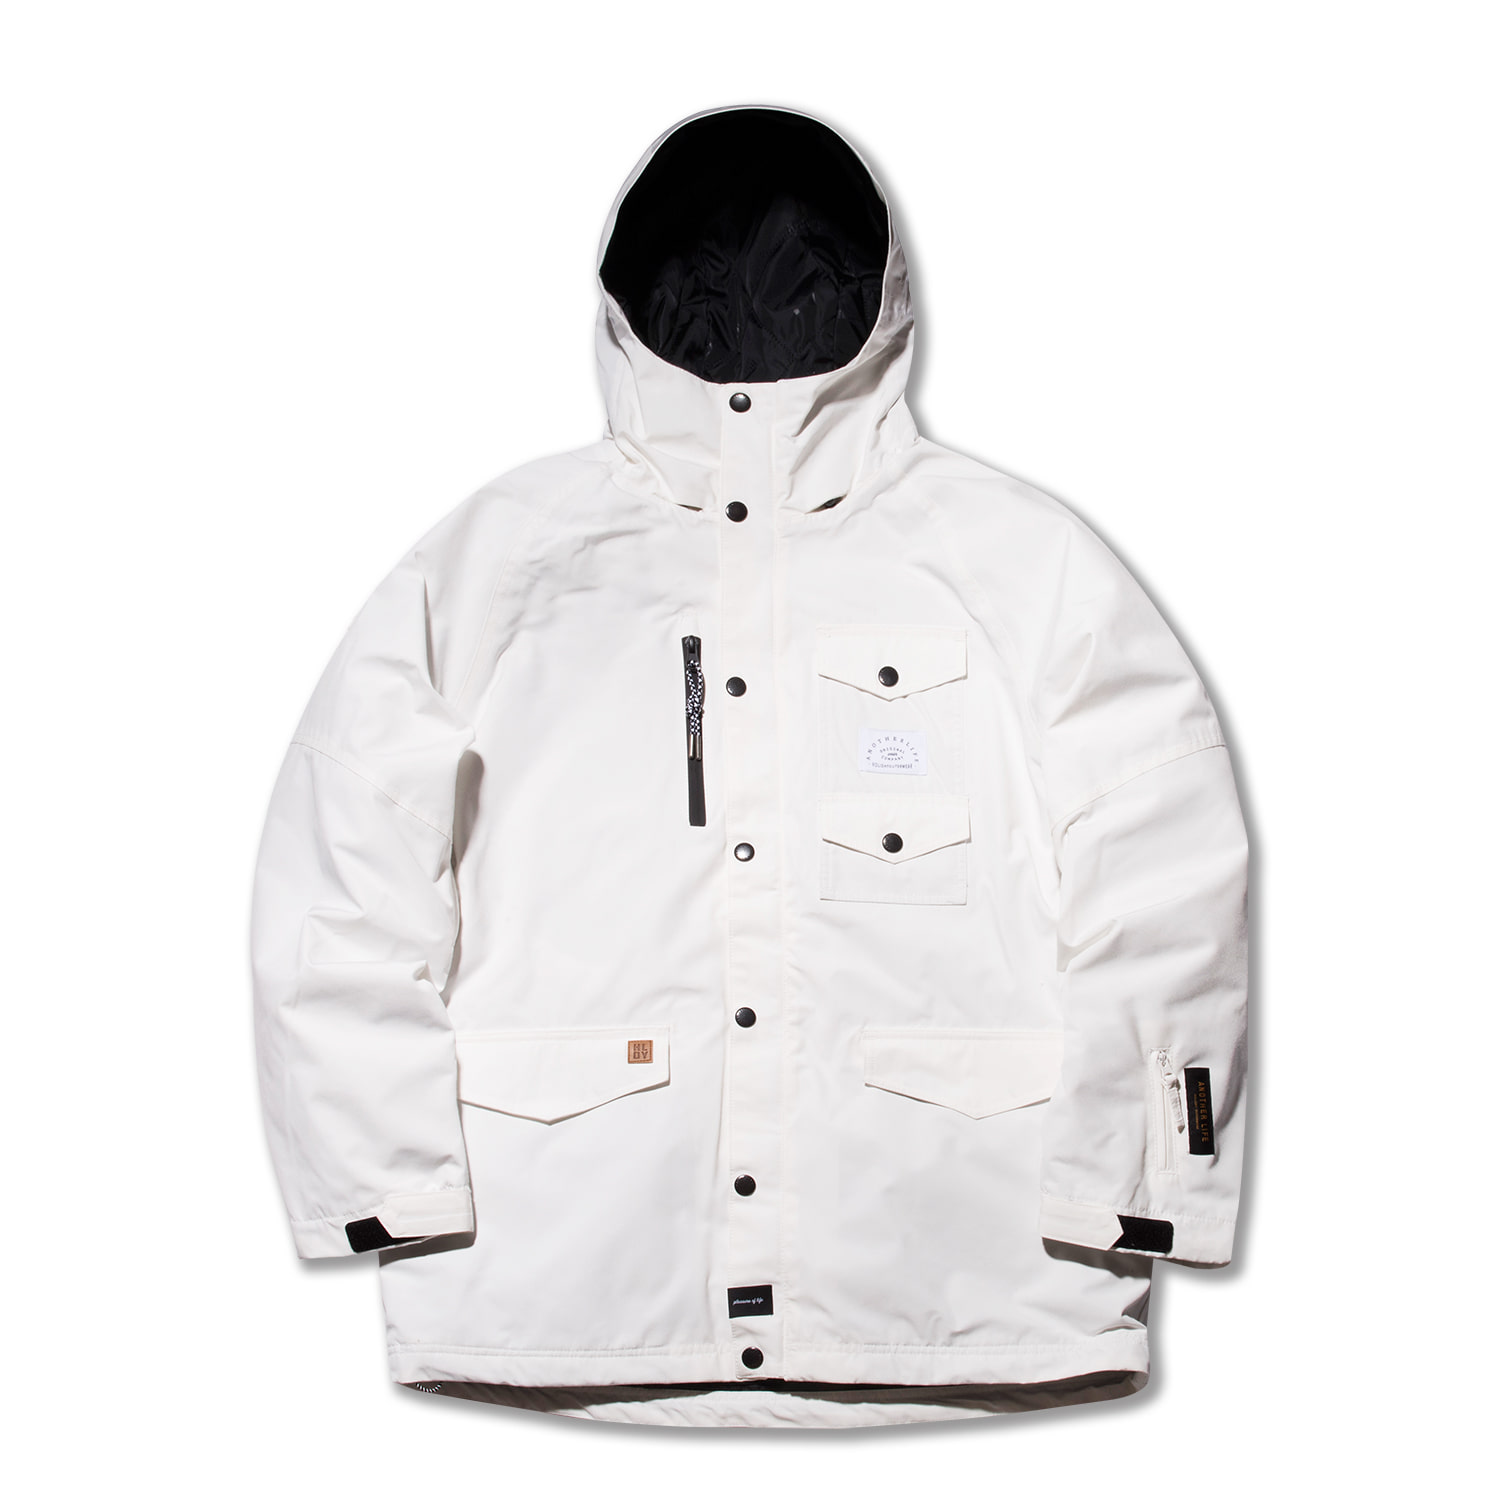 TROOPER jacket - whiteHOLIDAY OUTERWEAR